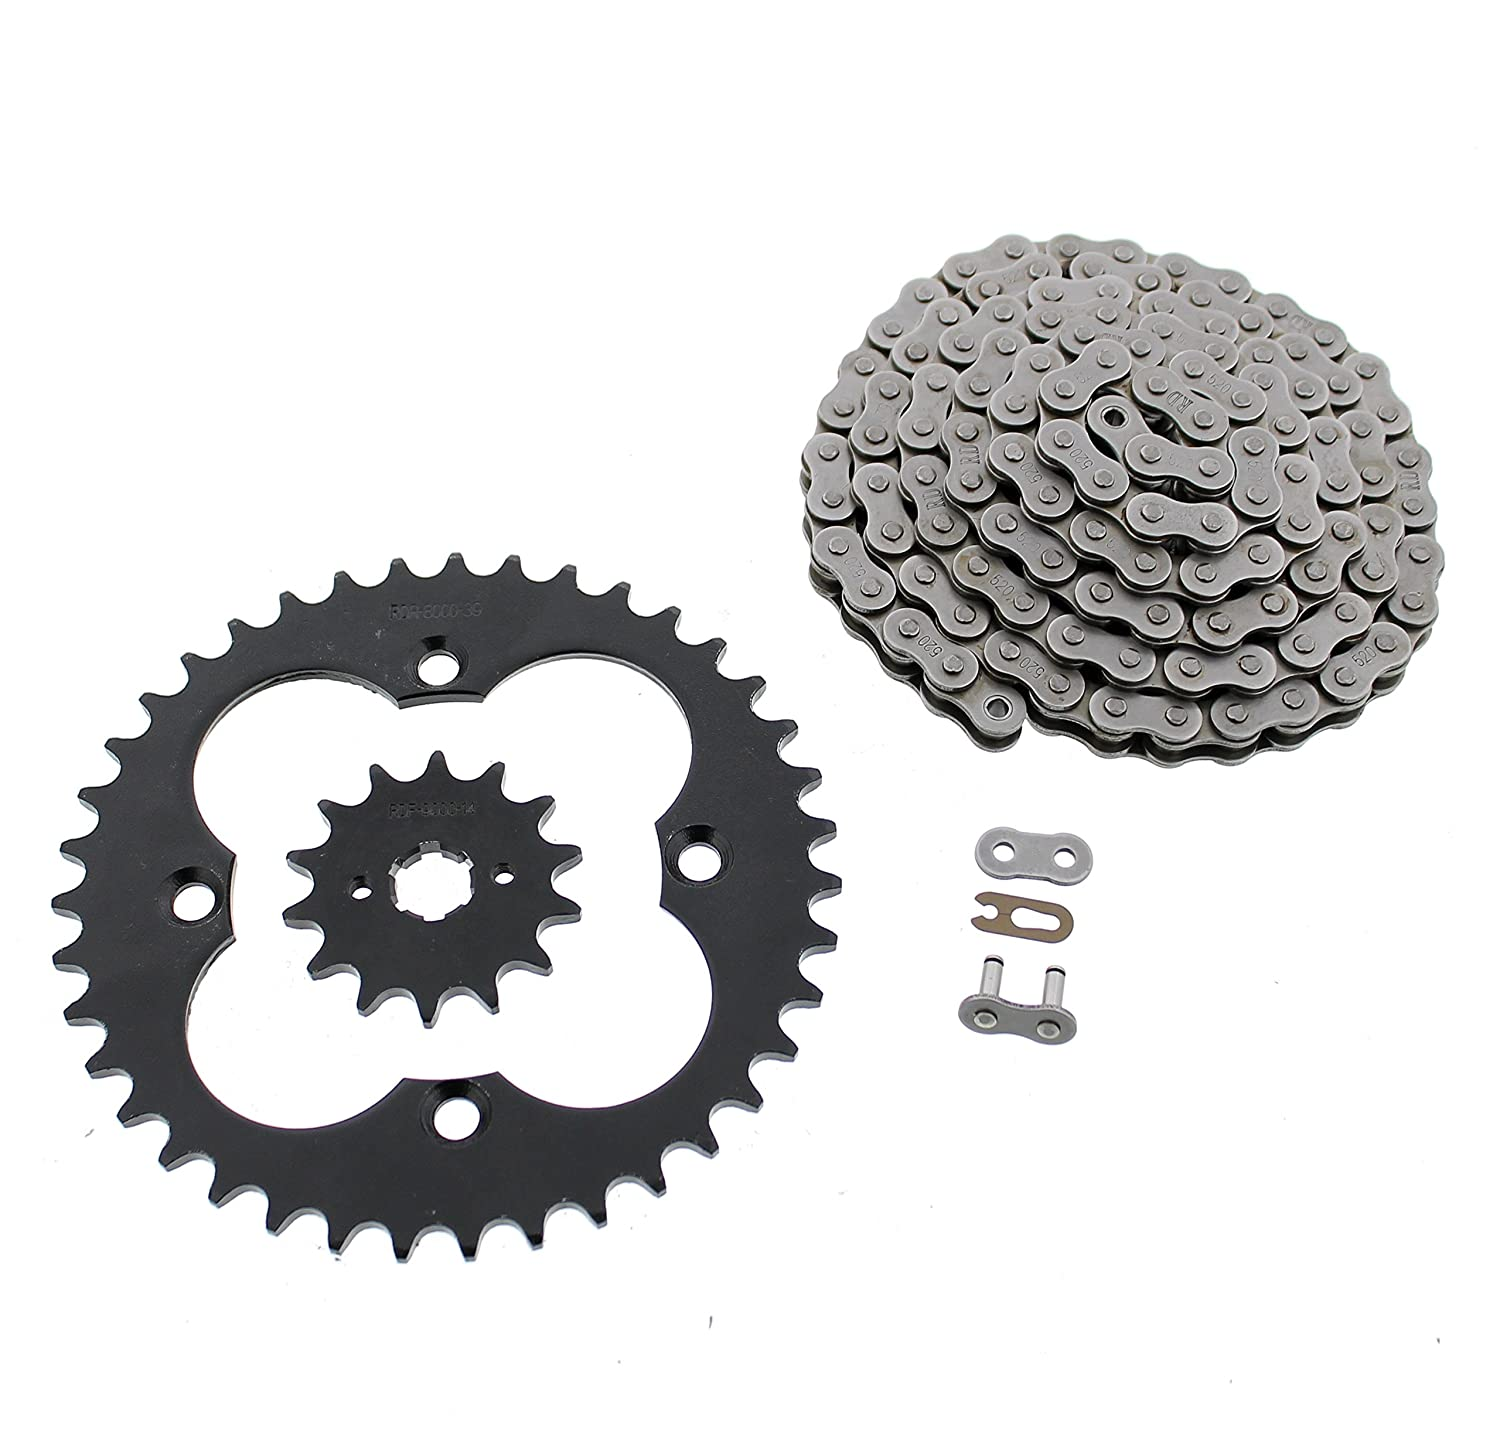 1999-2004 Honda 300EX TRX300EX Non O-Ring Chain & Black Sprocket Set 14/39 88L Race-Driven